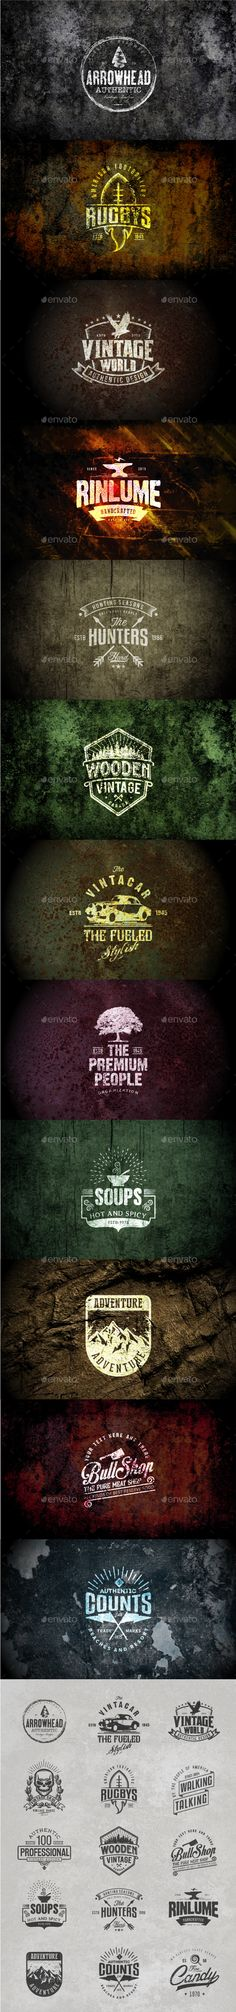 Grunge Badges and Logos #design Download: http://graphicriver.net/item/grunge-badges-and-logos-vol01/13316784?ref=ksioks